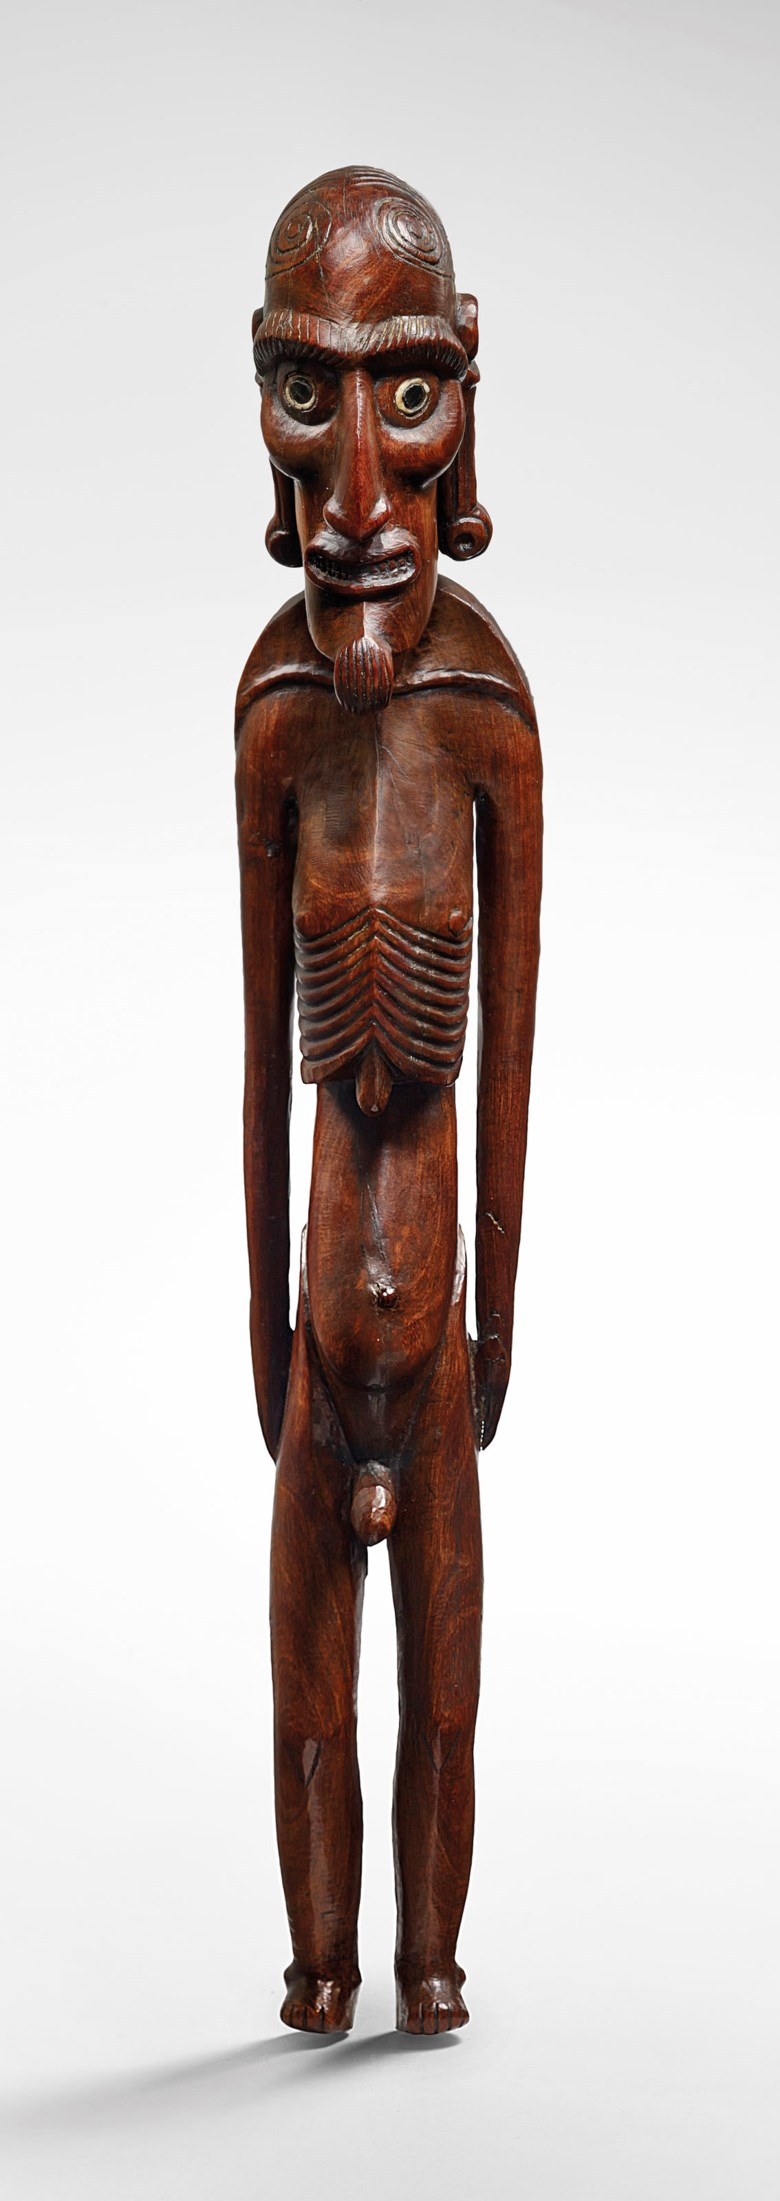 The Hooper moai kavakava figure, Rapa Nui, Polynesia.Height 44 cm (17⅜ in). Sold for €850,000 on 10 April 2019 at Christie's in Paris